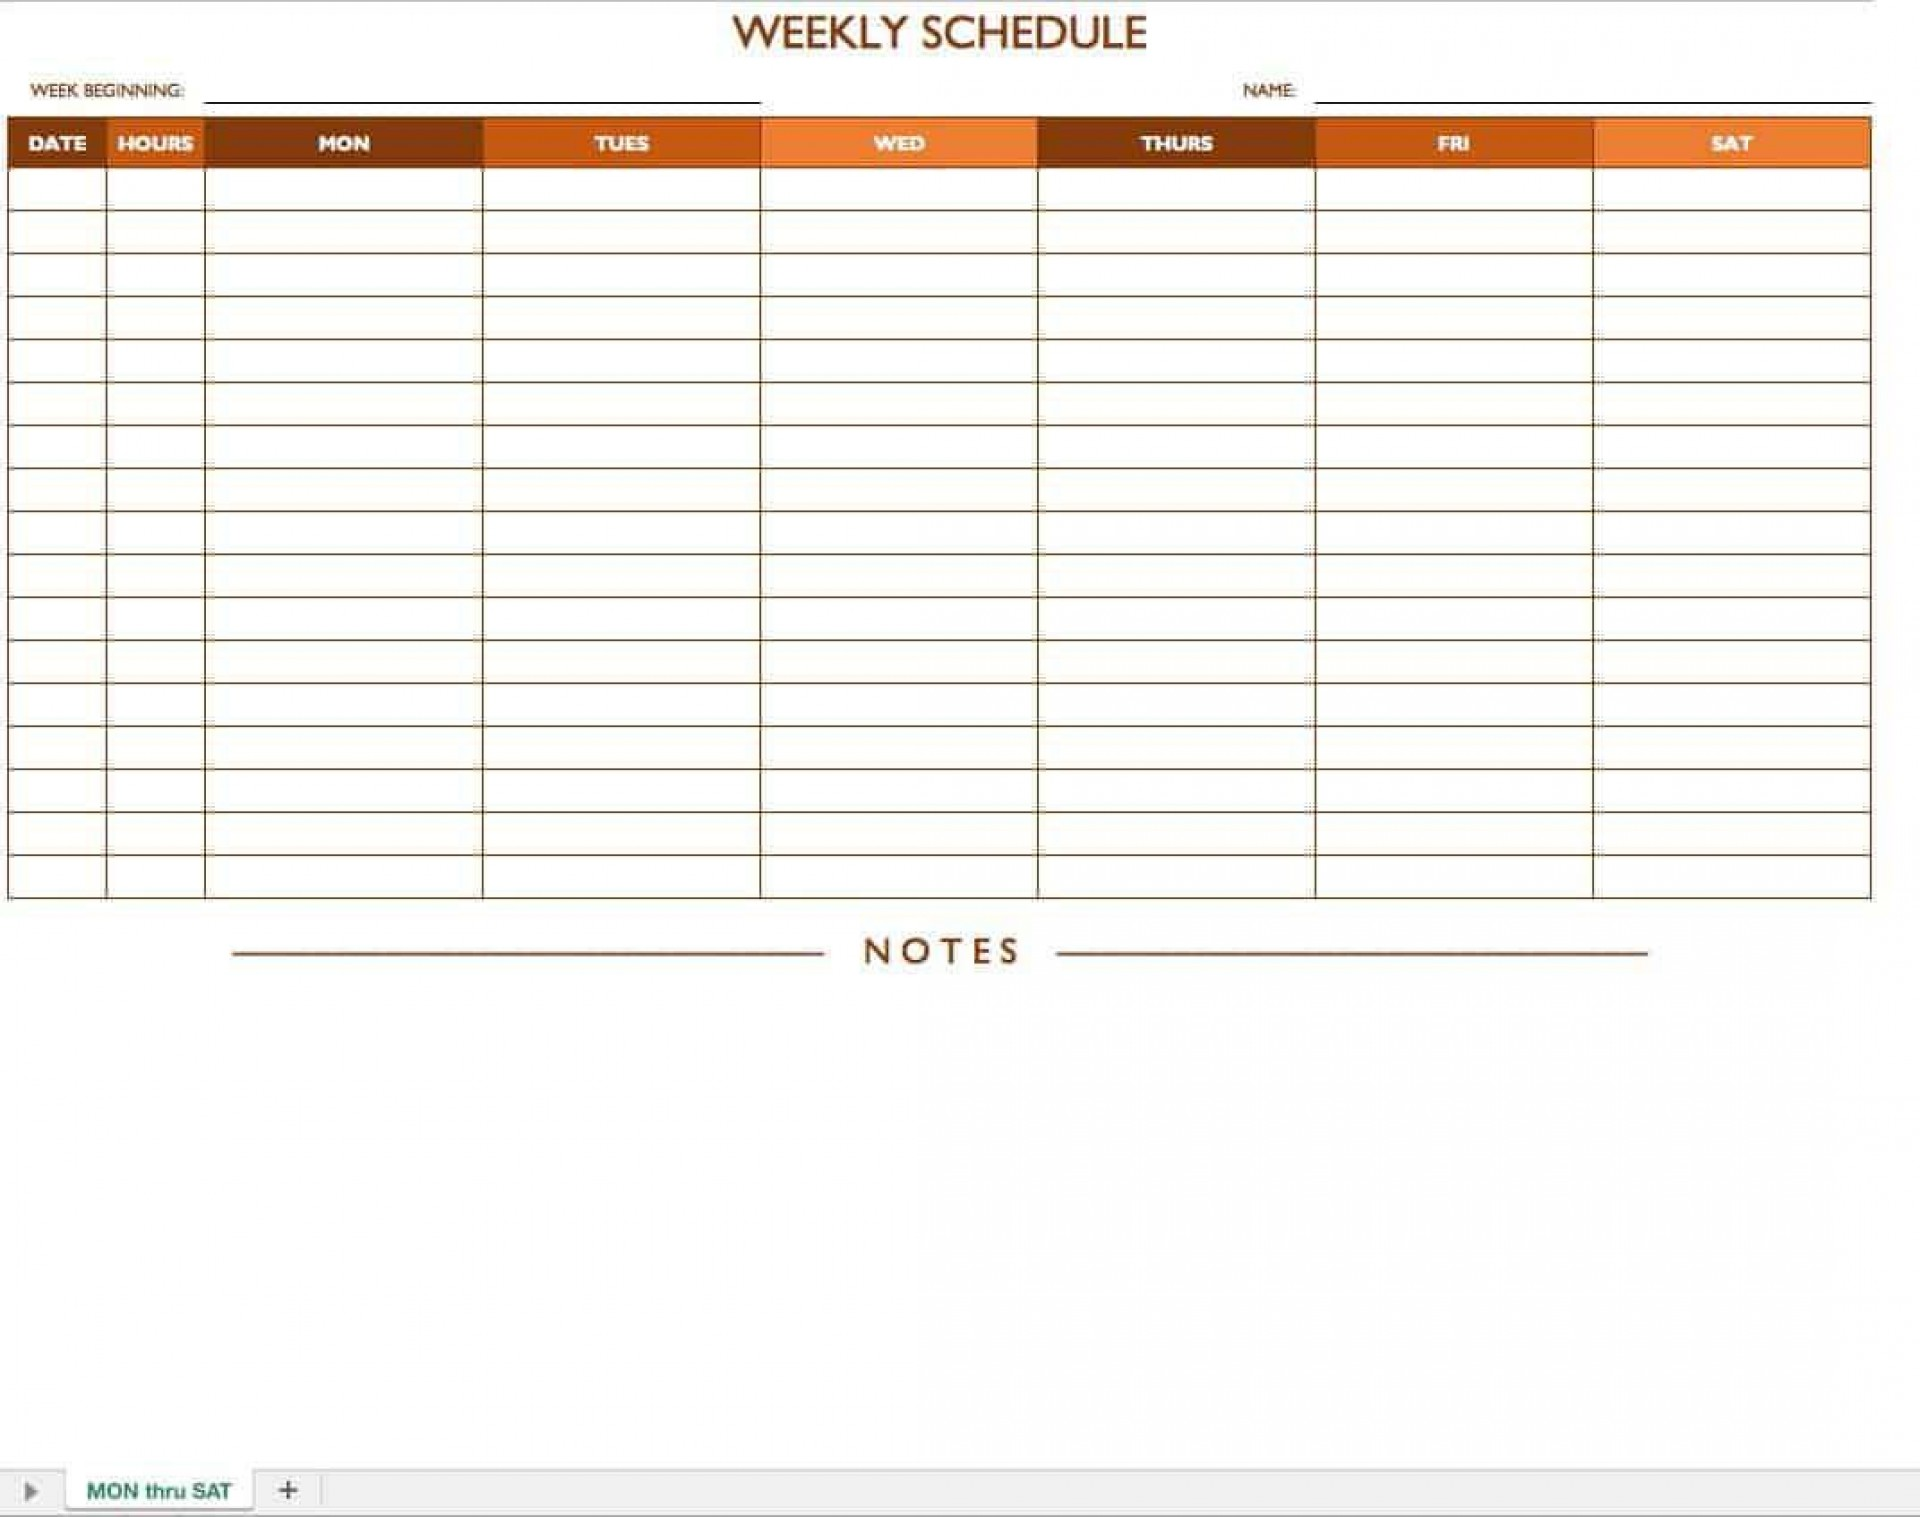 004 Best Weekly Work Schedule Template Highest Quality  Pdf Free Excel1920